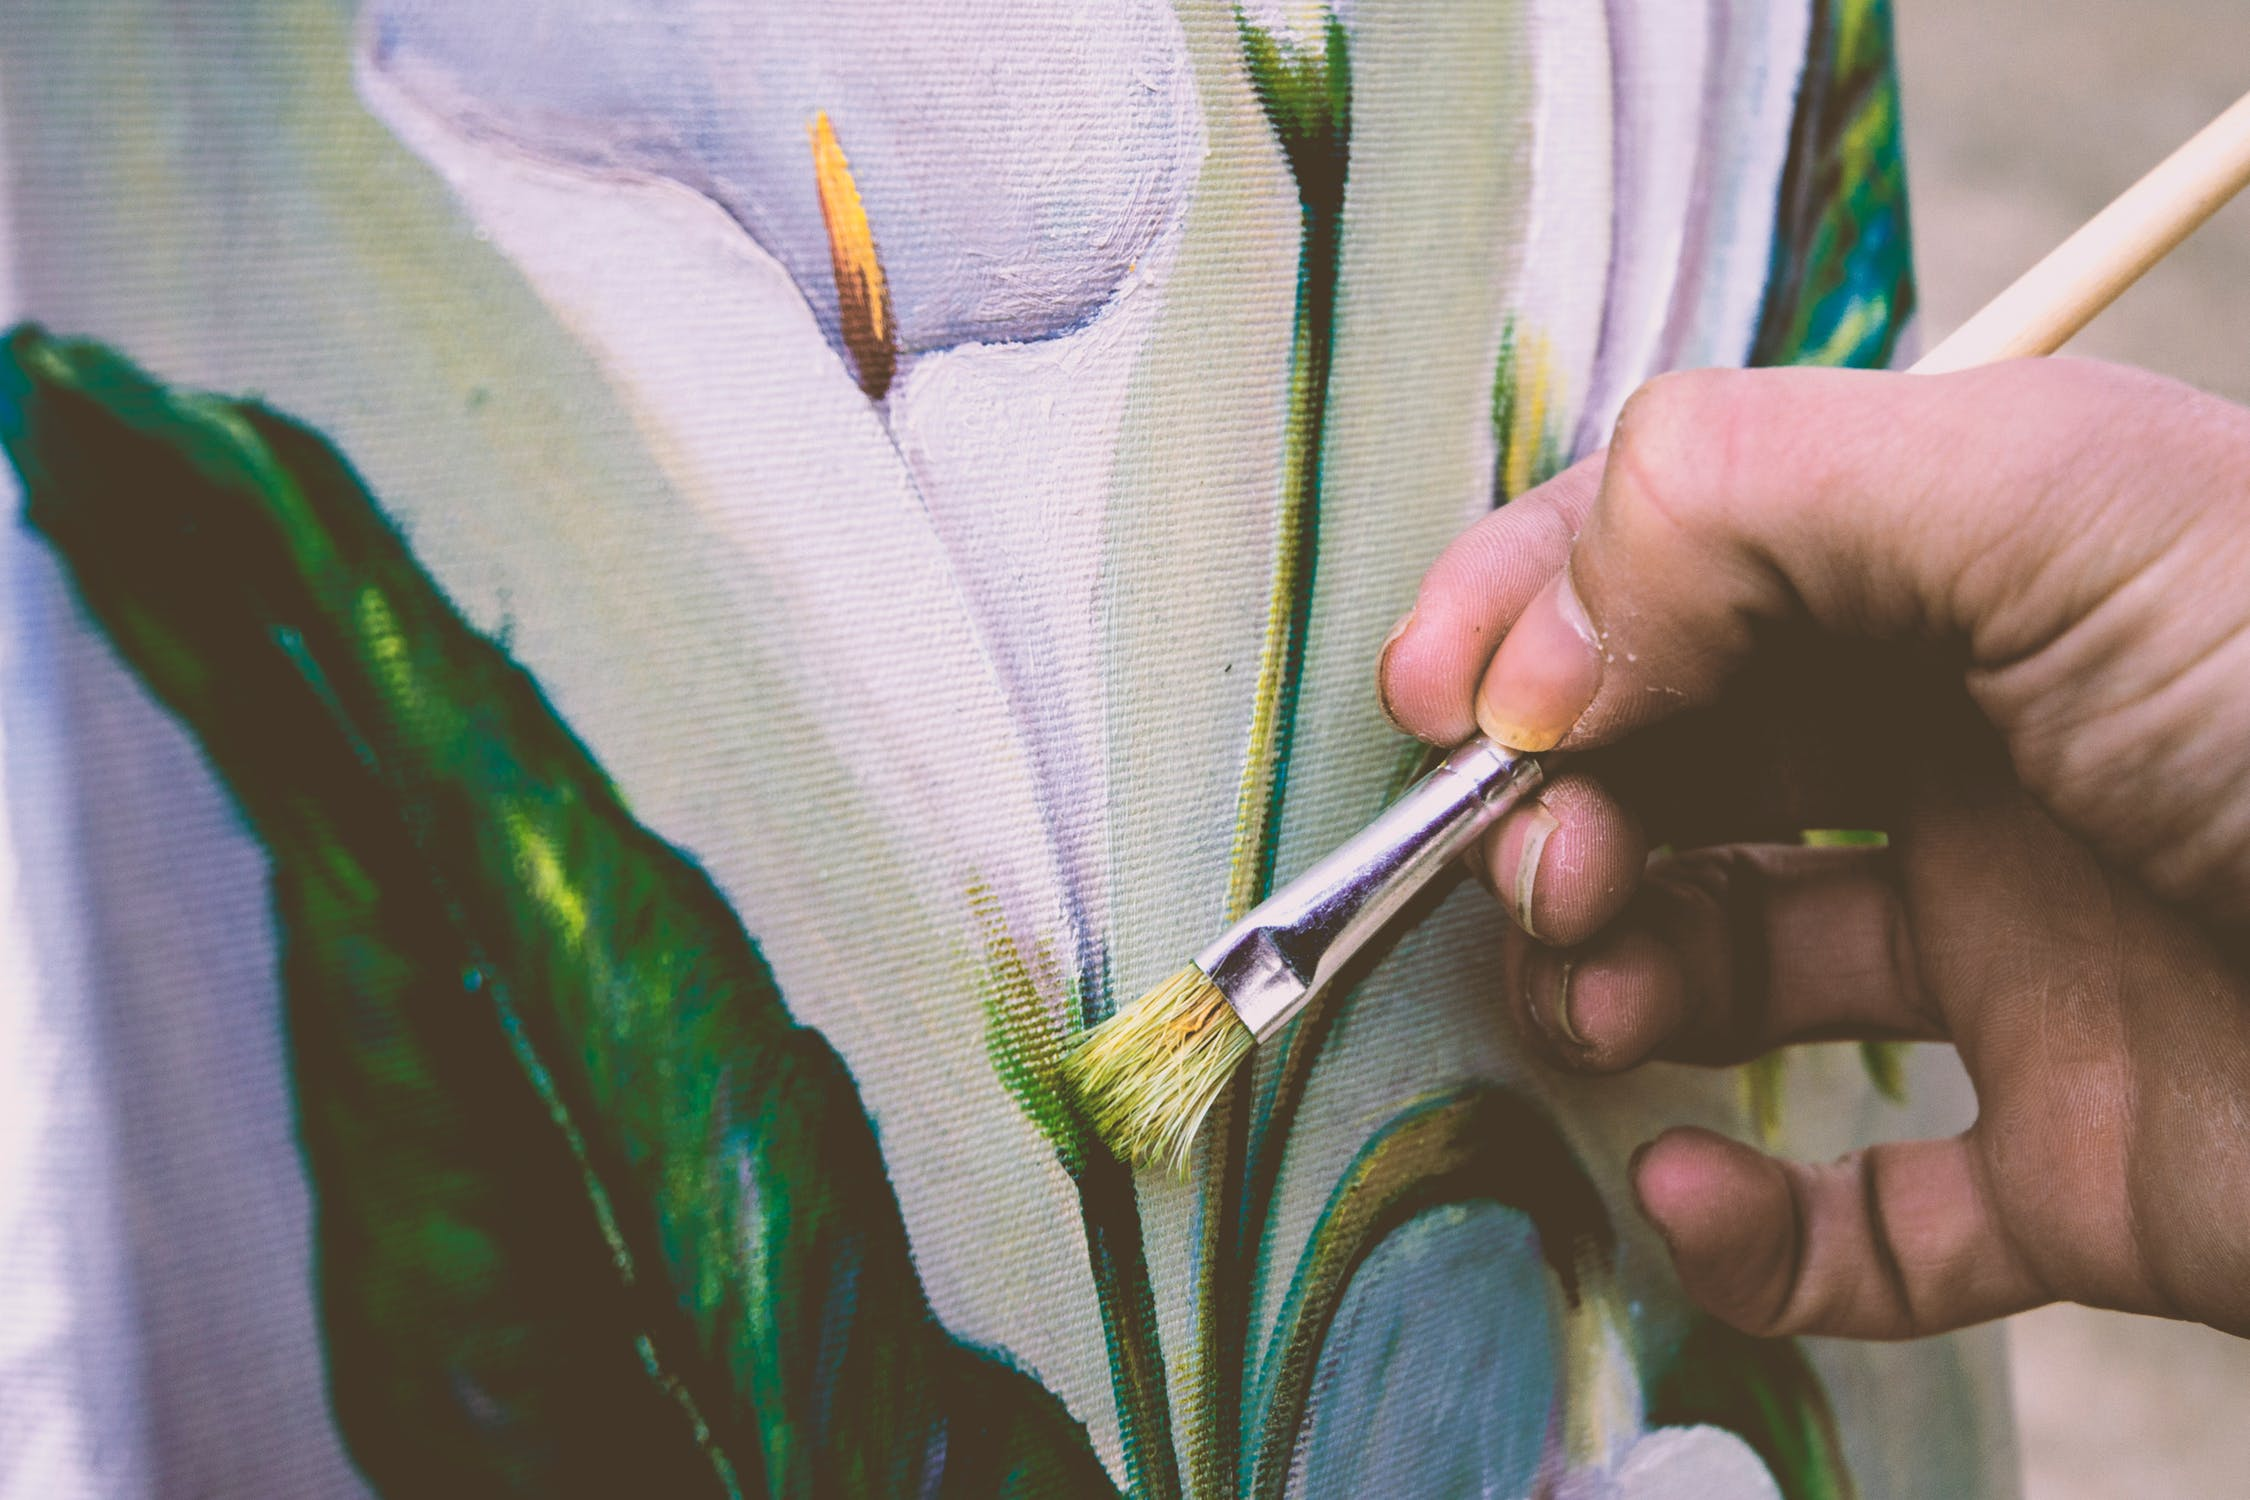 A hand touching up an oil canvas painting of a lily